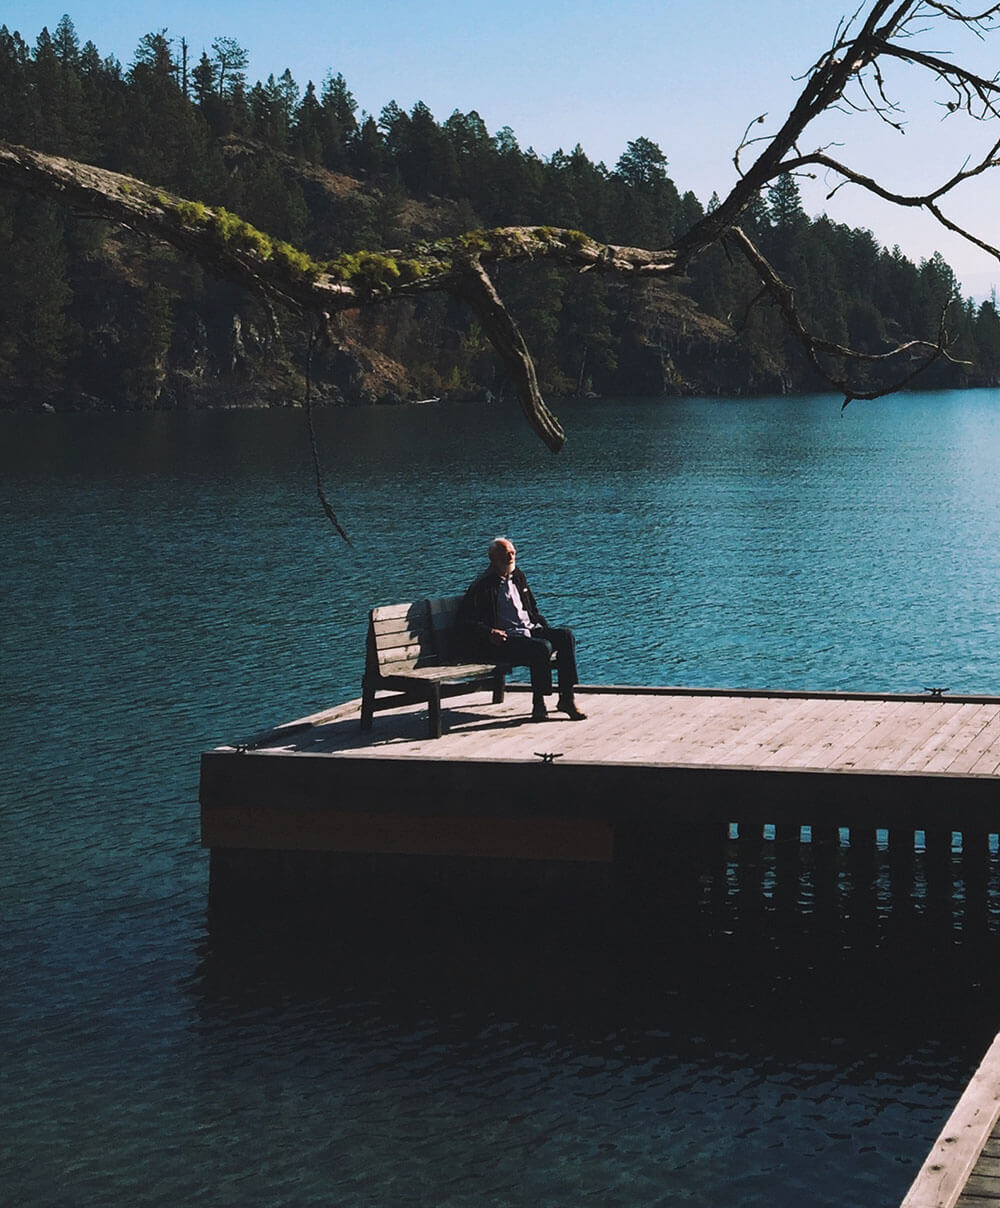 Eugene Peterson sits on a dock by a still lake